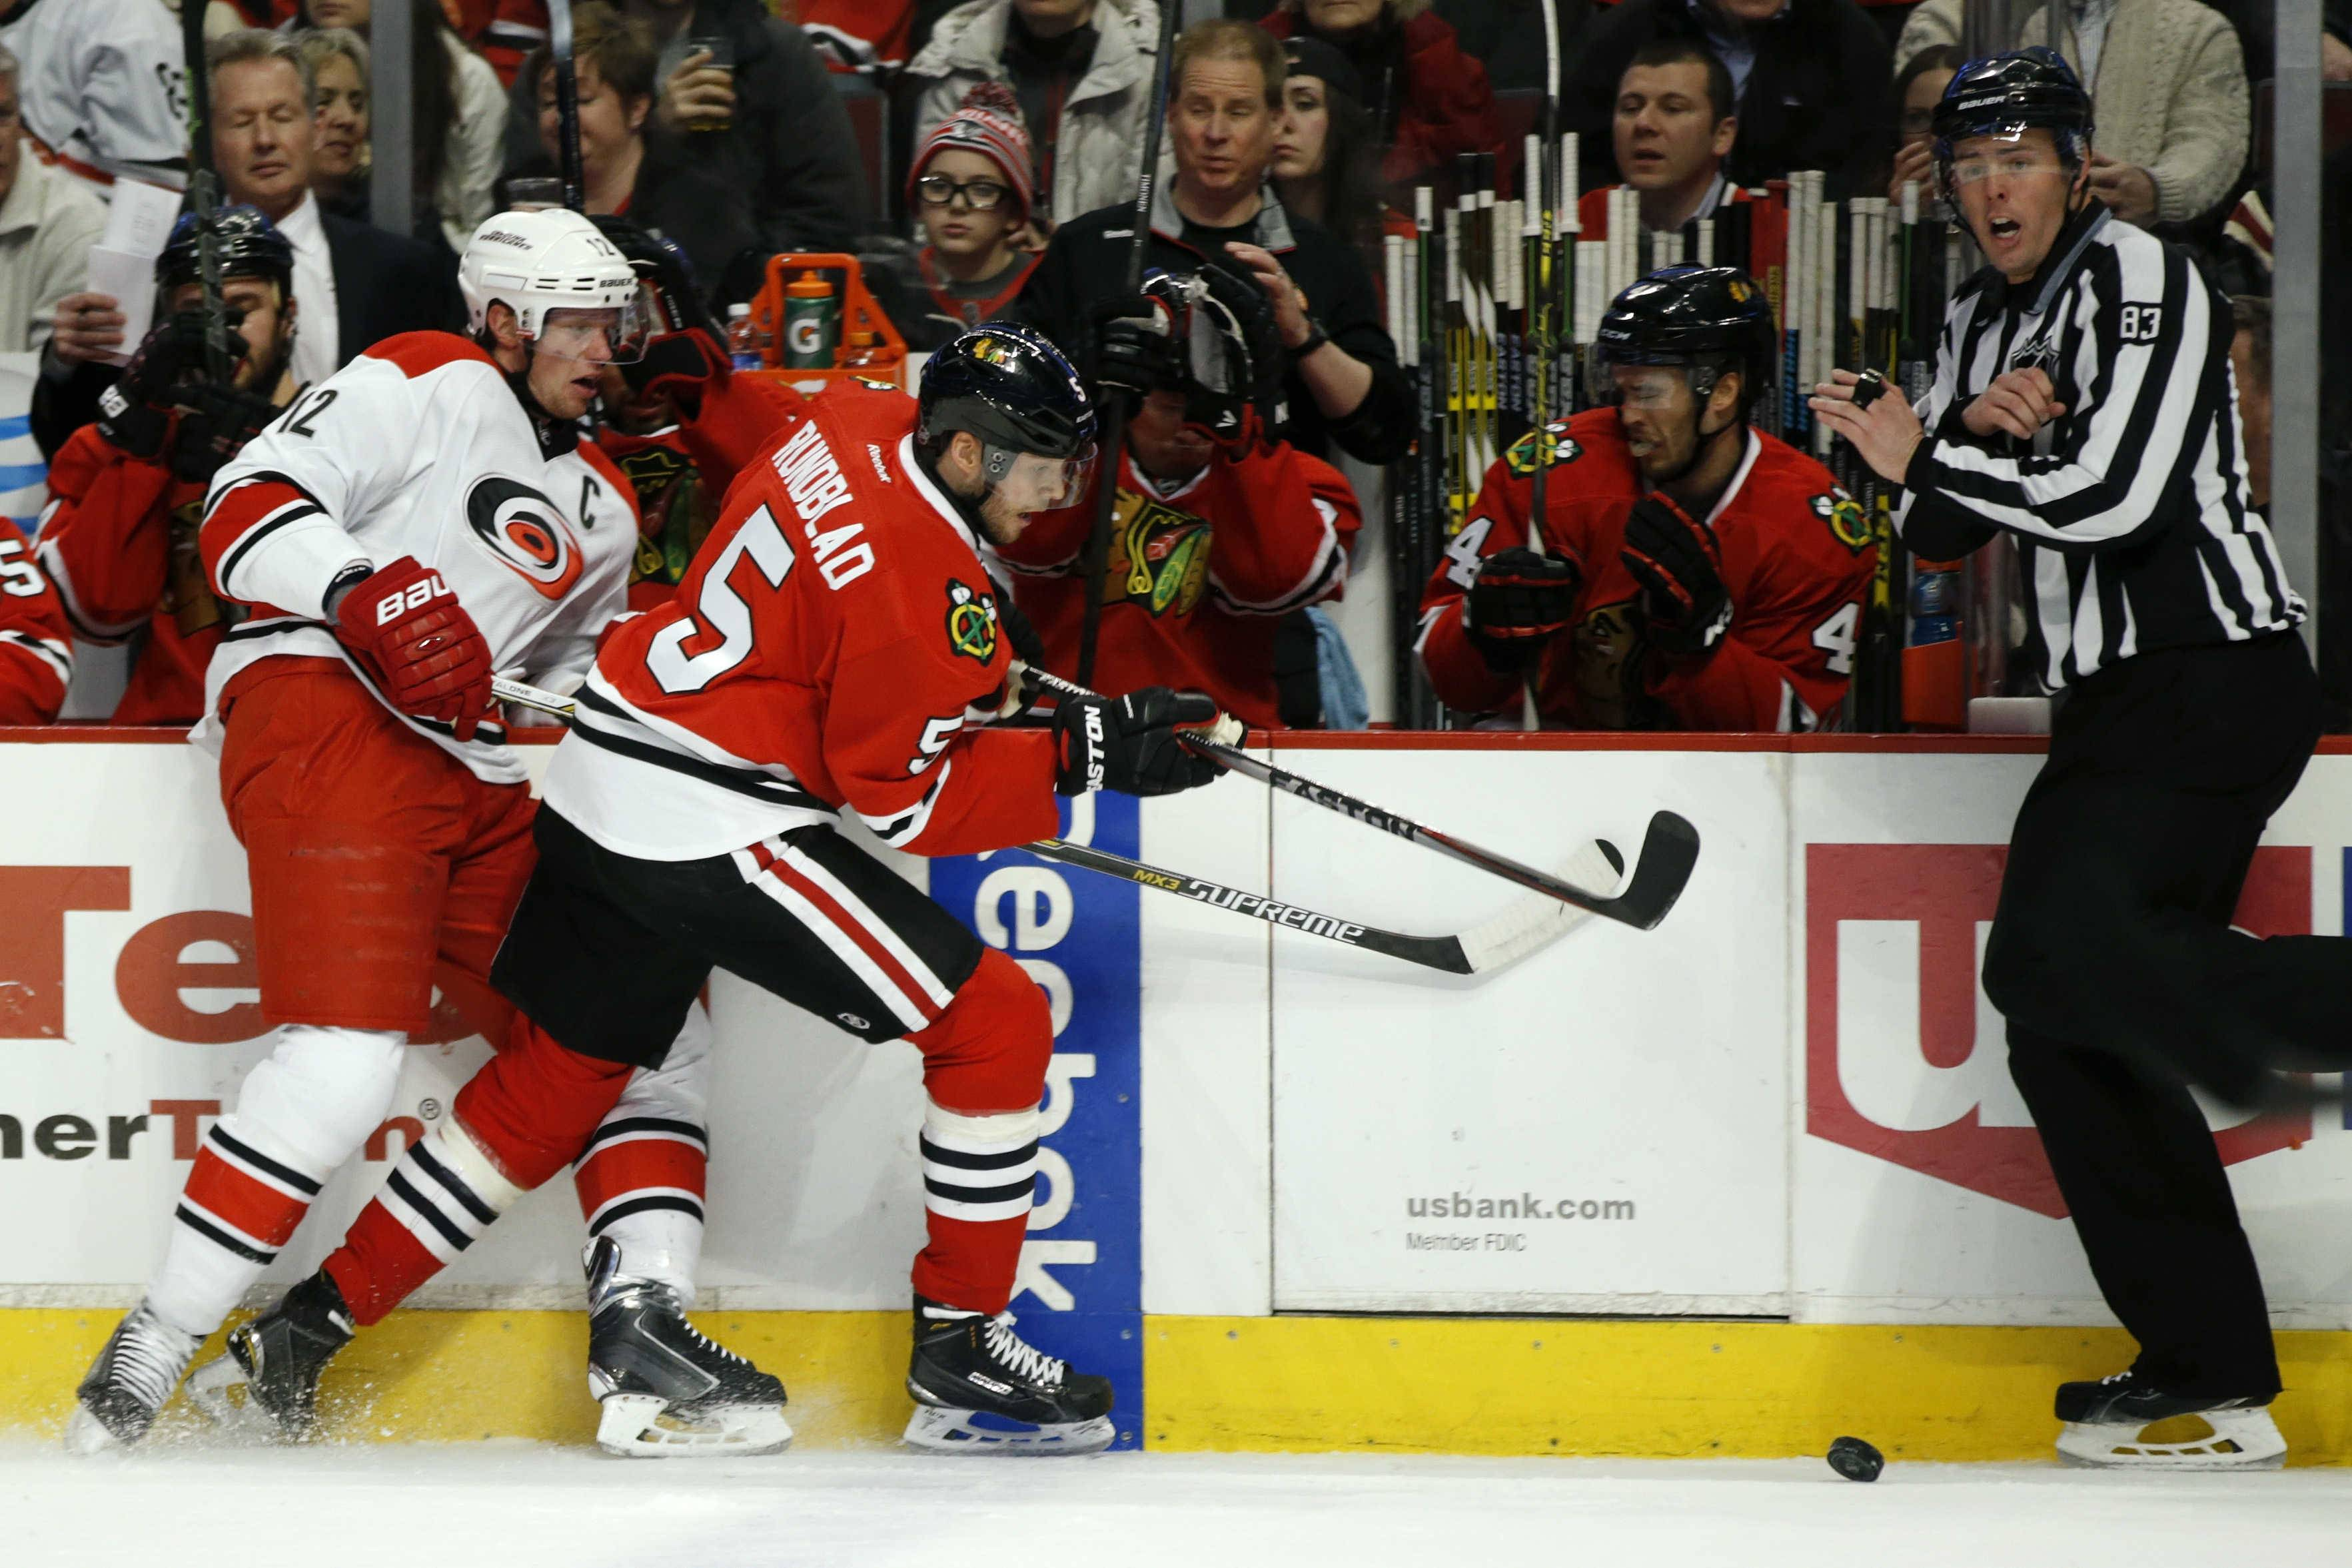 Chicago Blackhawks defenseman David Rundblad (5) and Carolina Hurricanes center Eric Staal, left, collide during the first period of an NHL hockey game Monday, March 2, 2015, in Chicago.